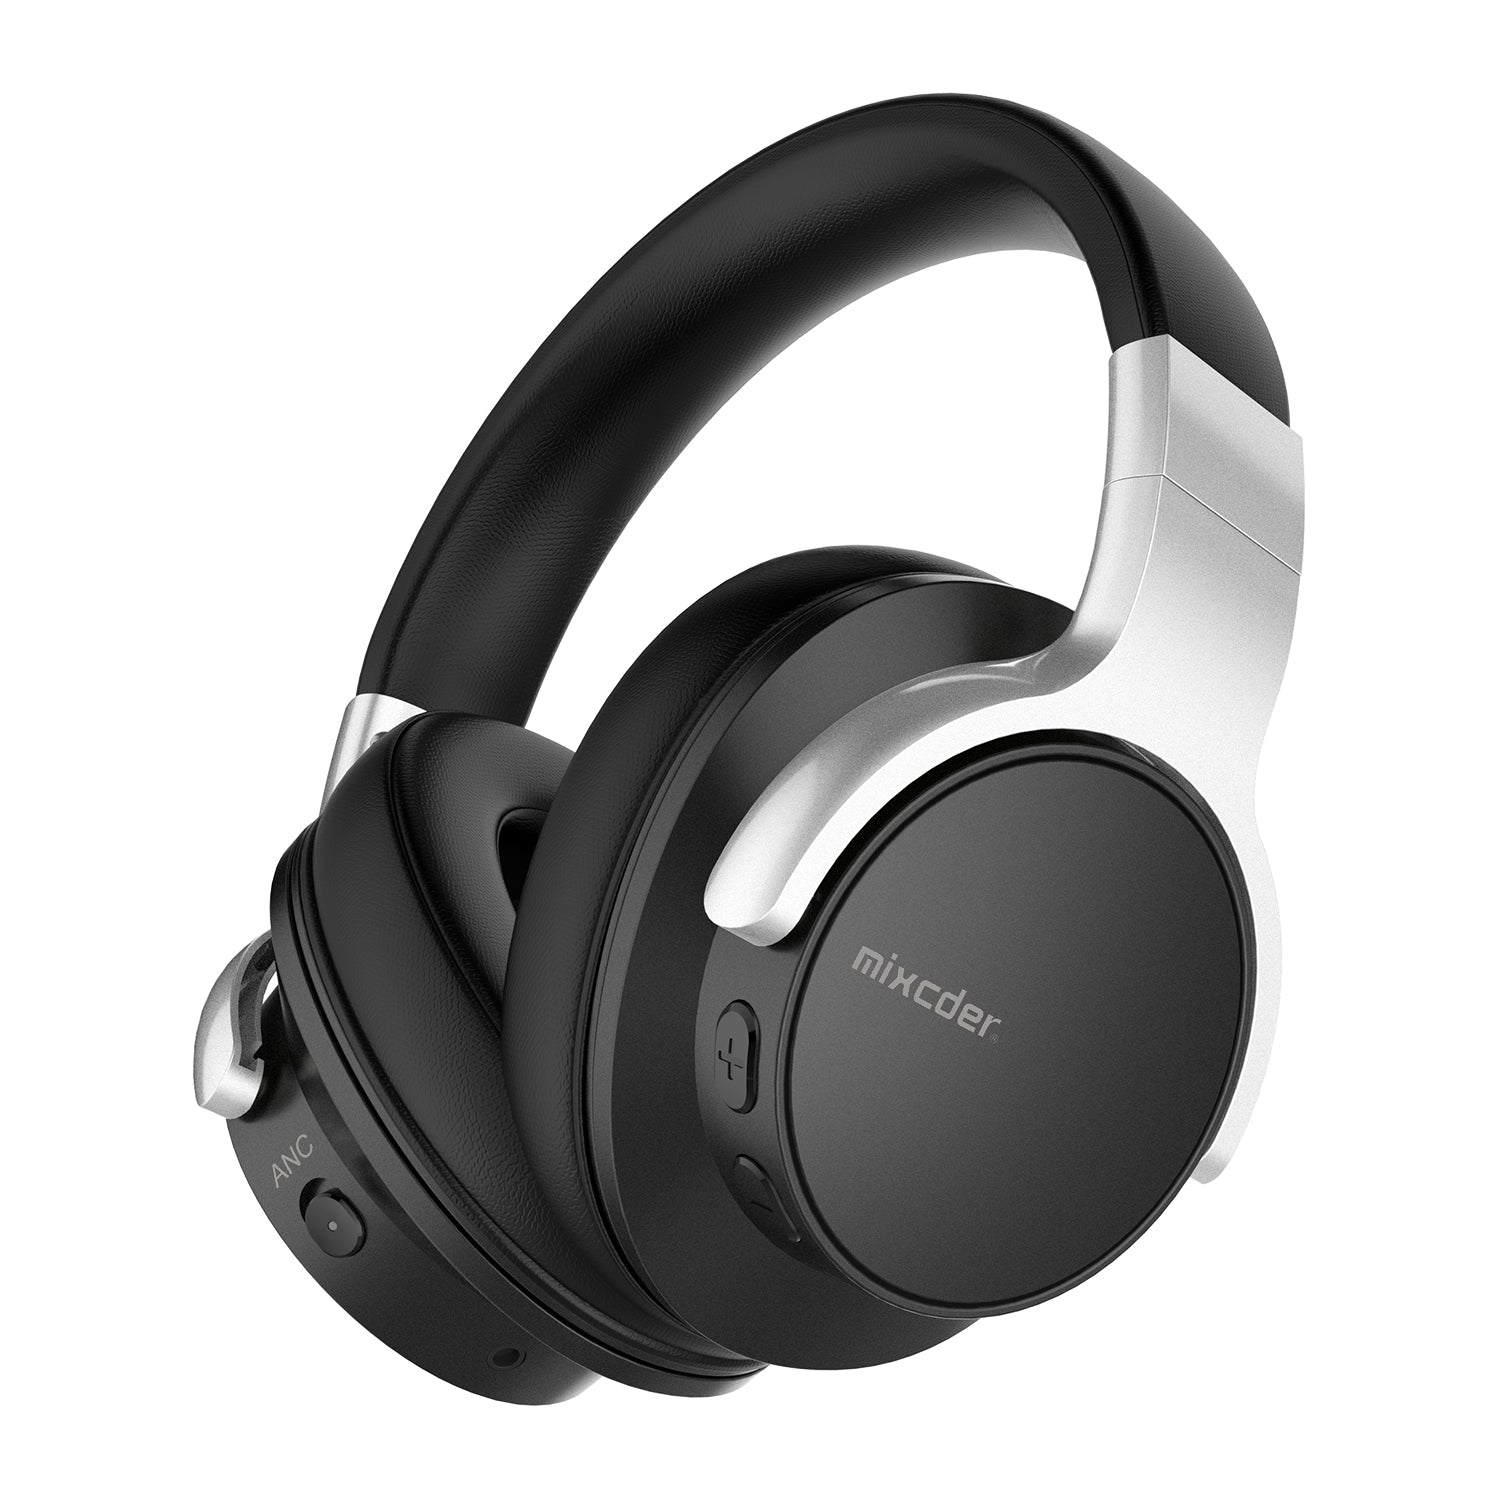 Mixcder E7 Wireless Active Noise Cancelling Headphones